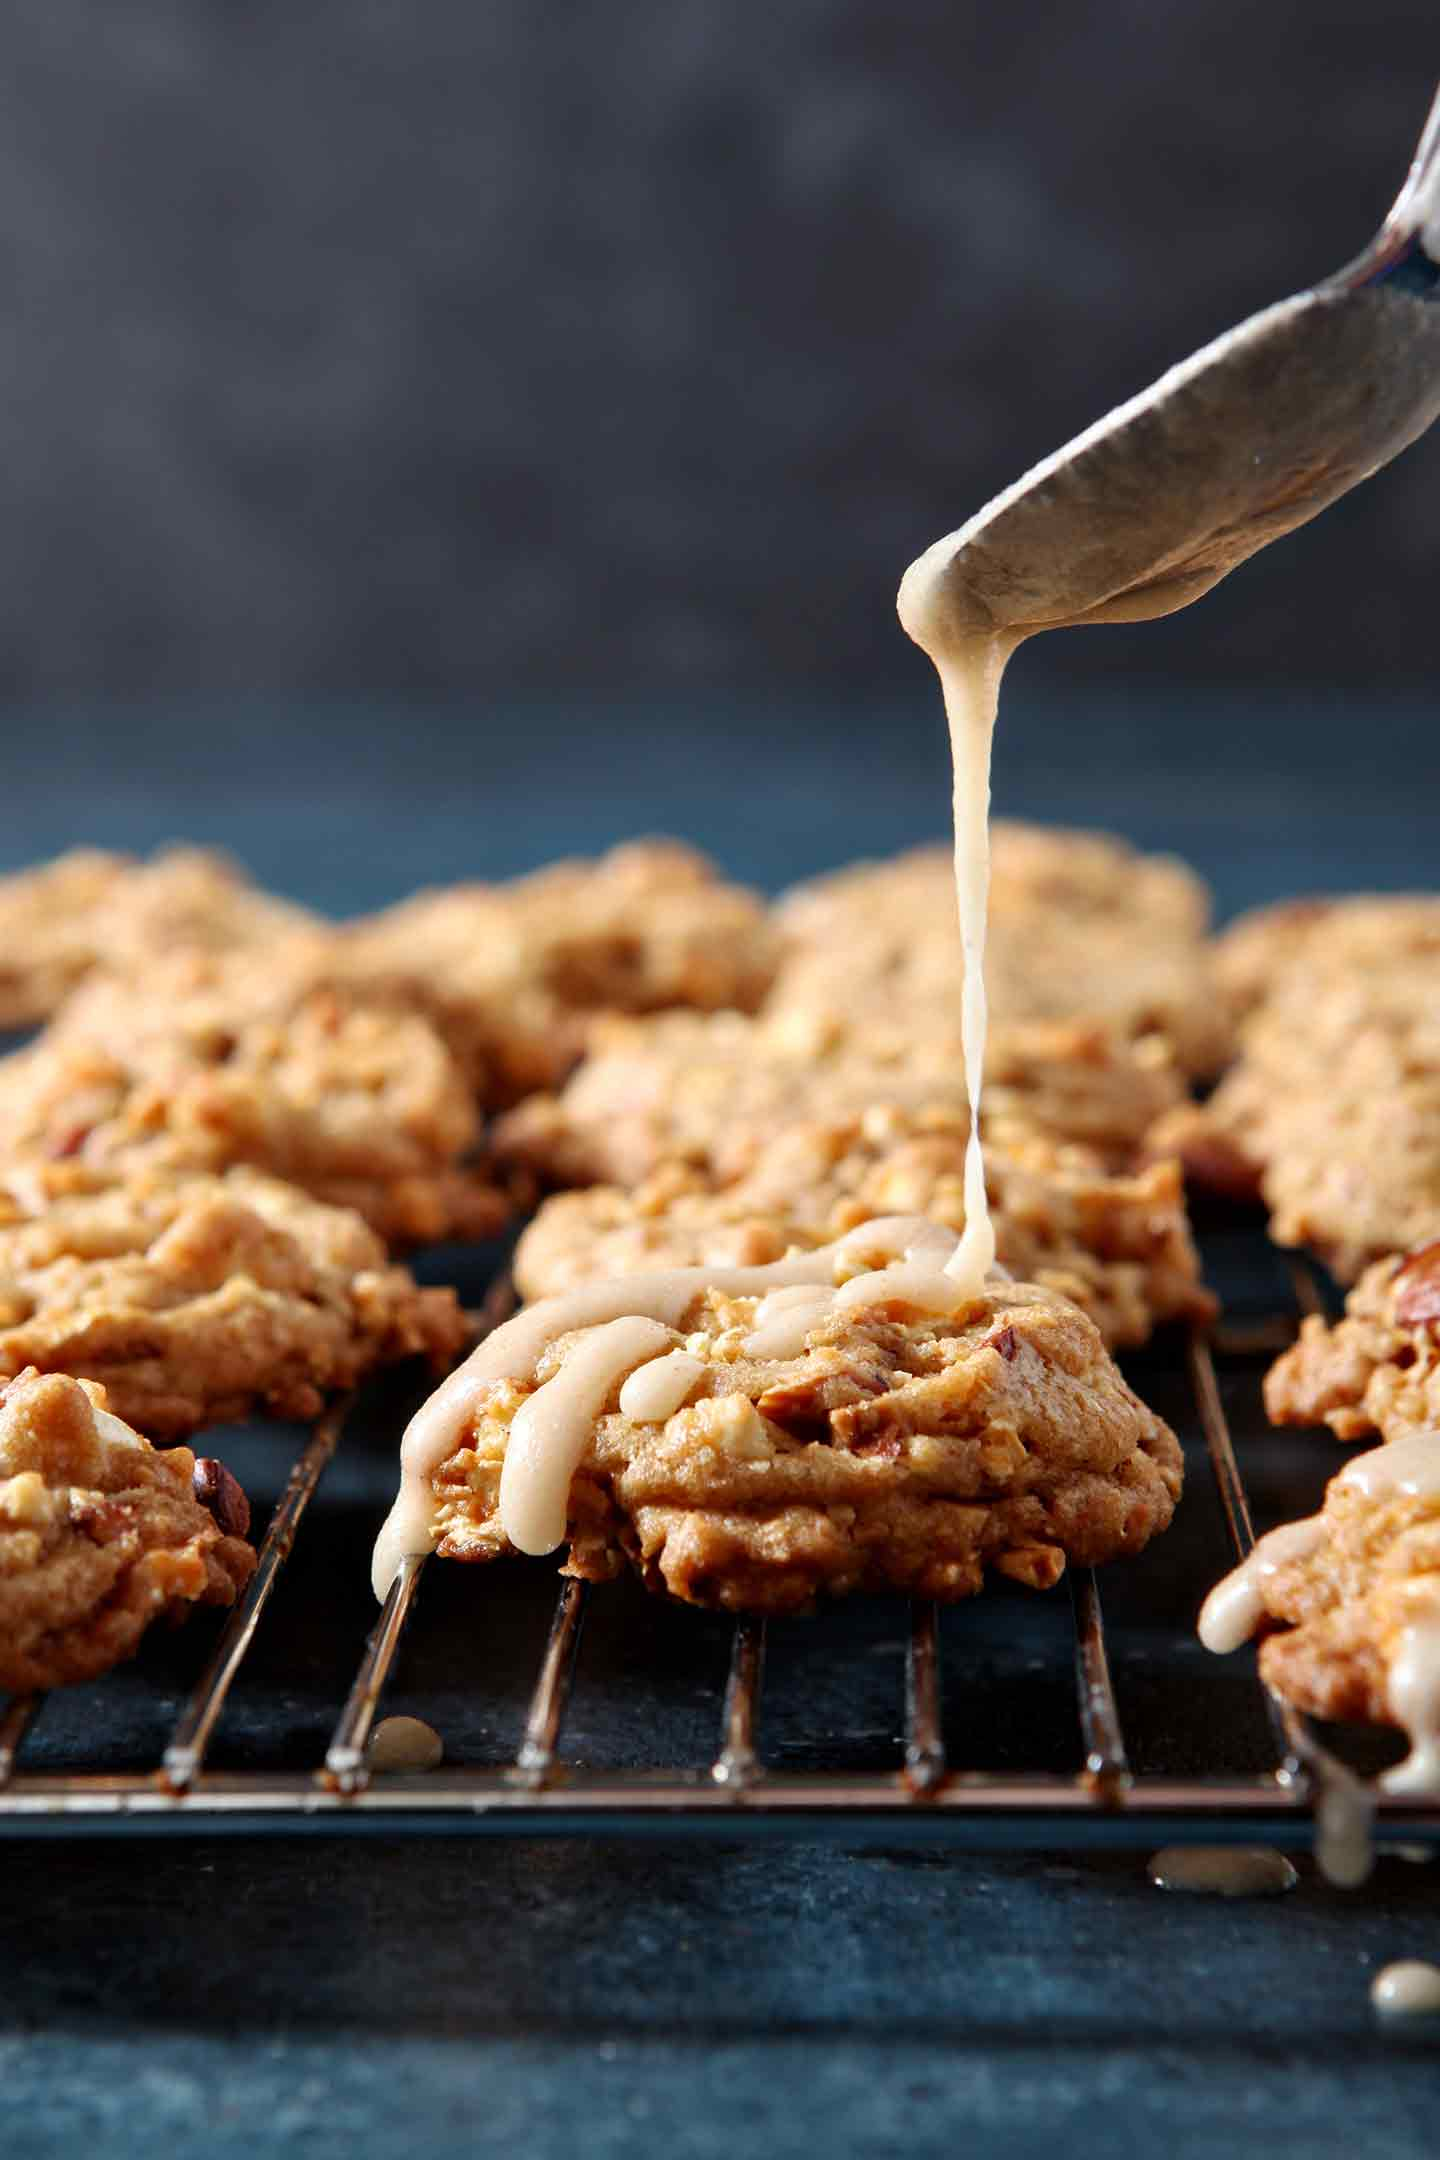 Icing is drizzled onto Caramel Corn Cookies, sitting on a wire cooling rack